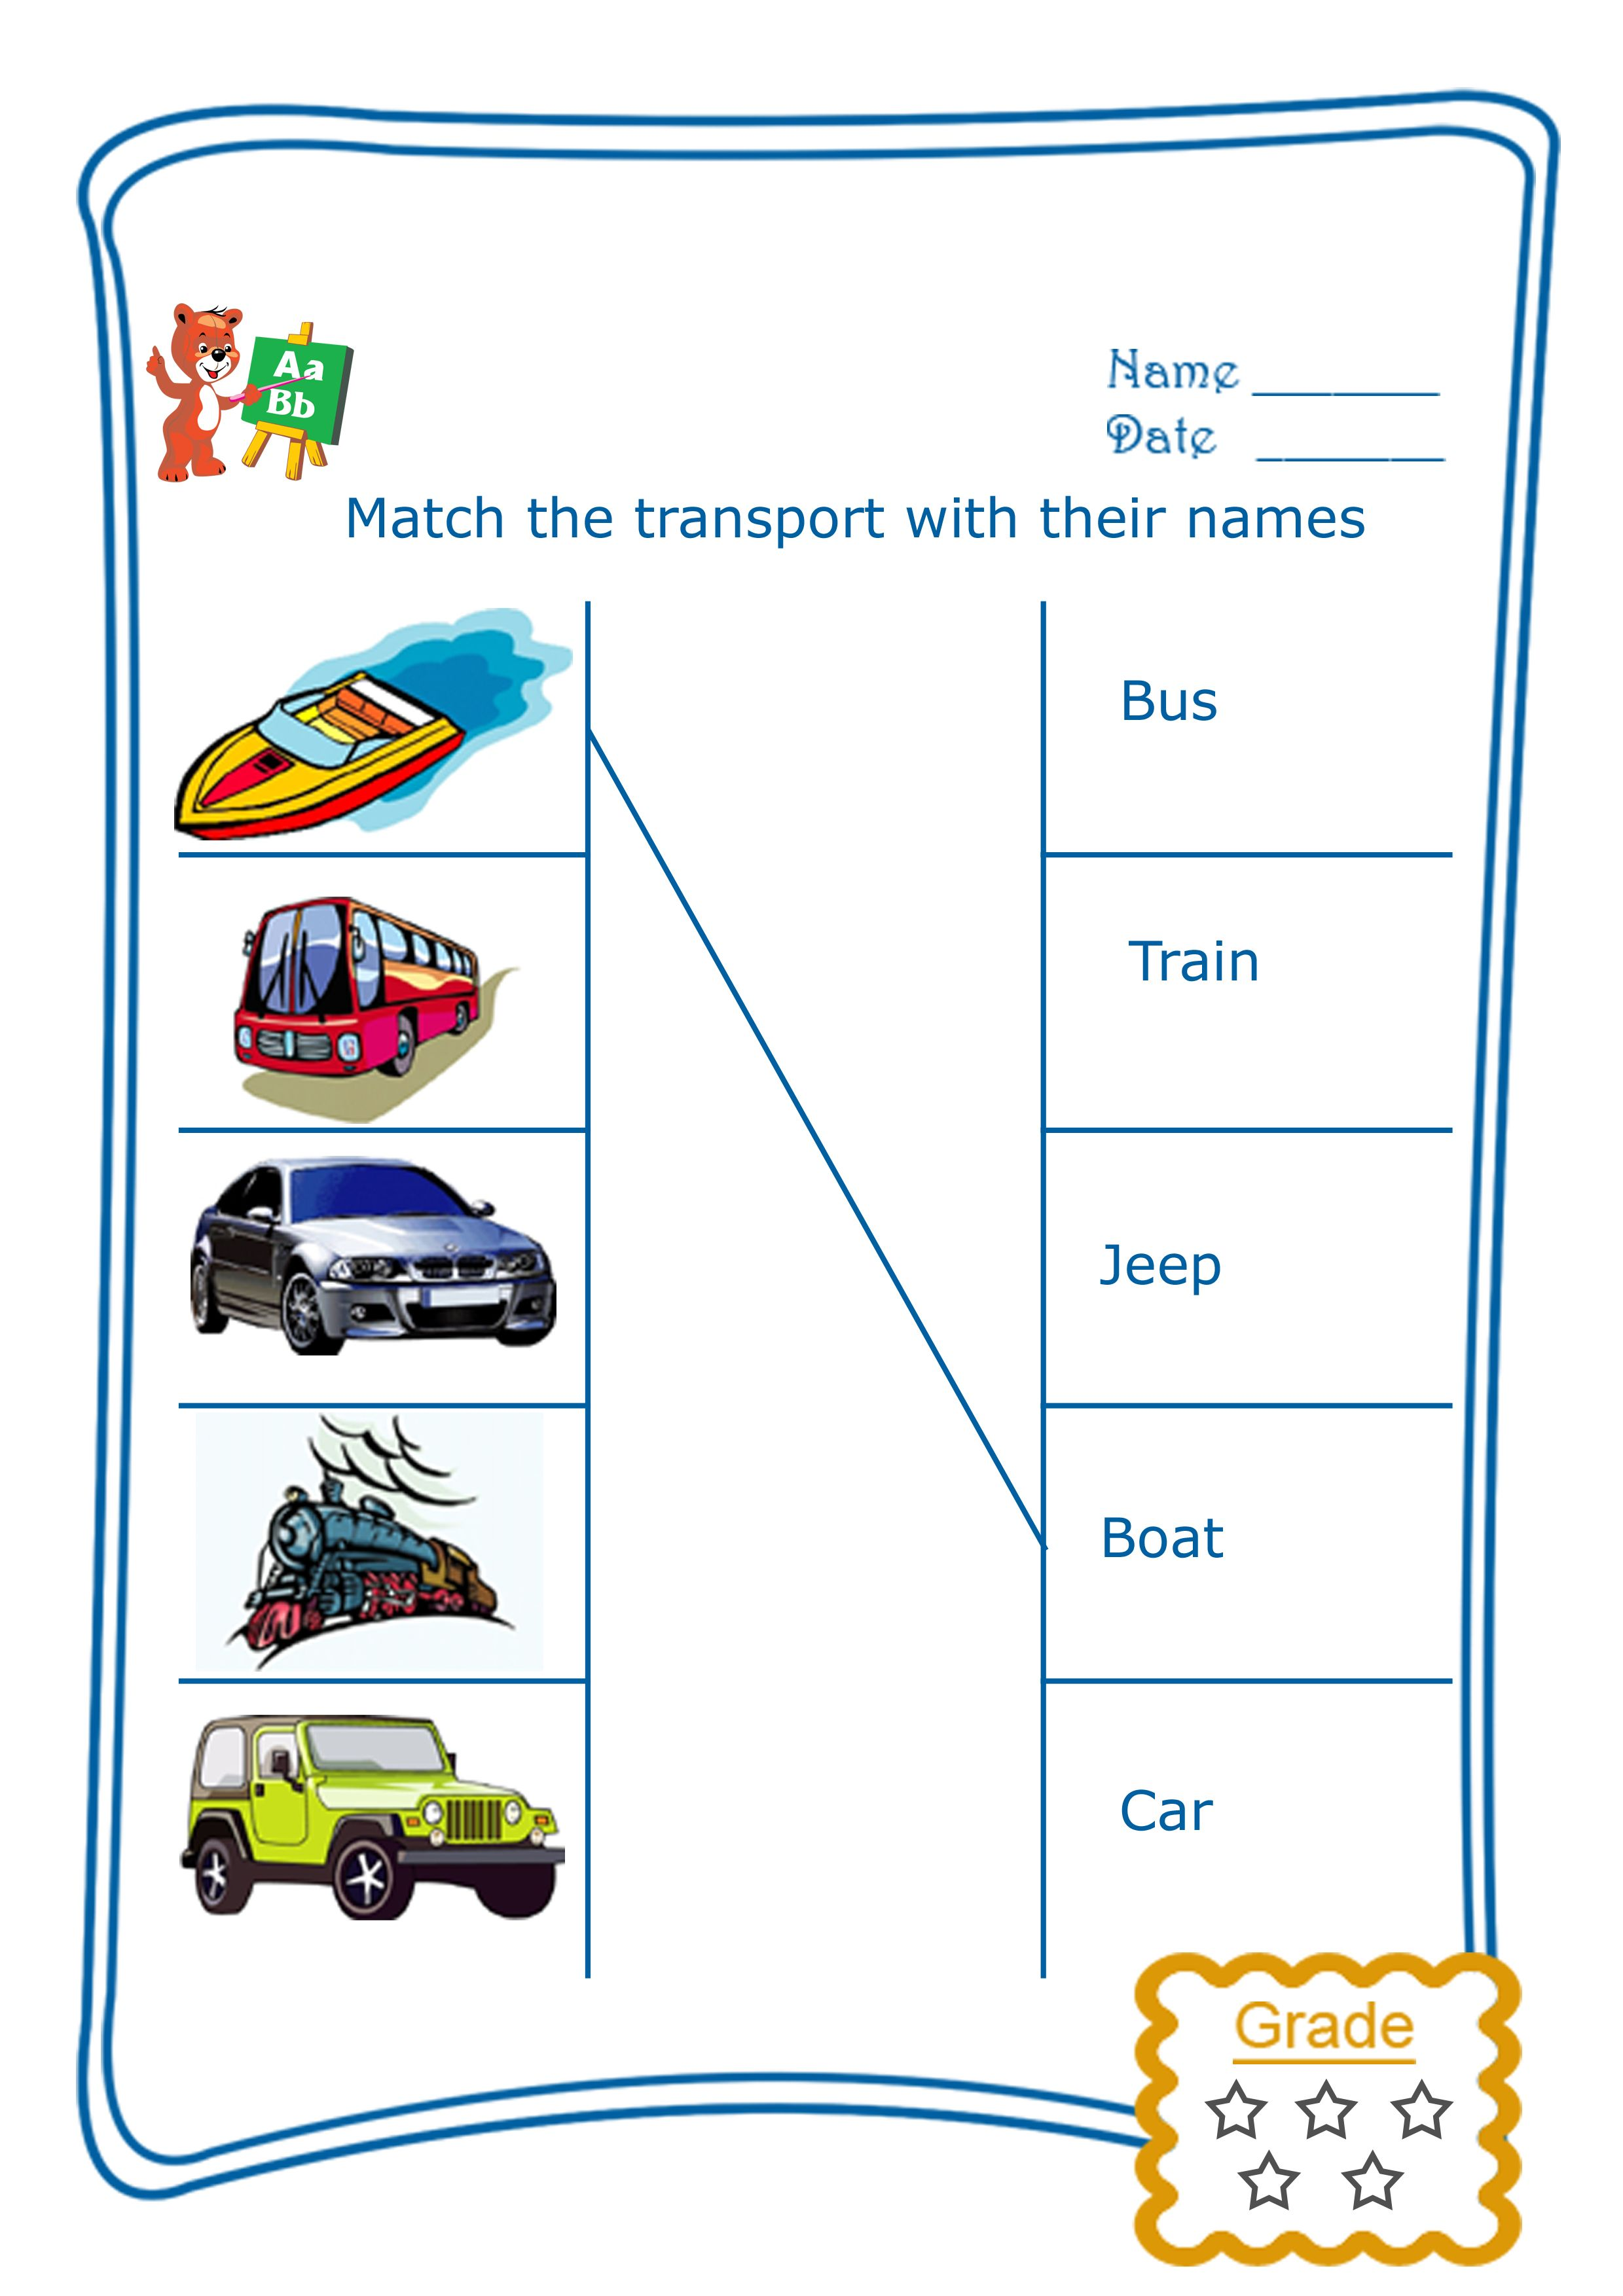 Match The Transport Name Match The Transport Name This